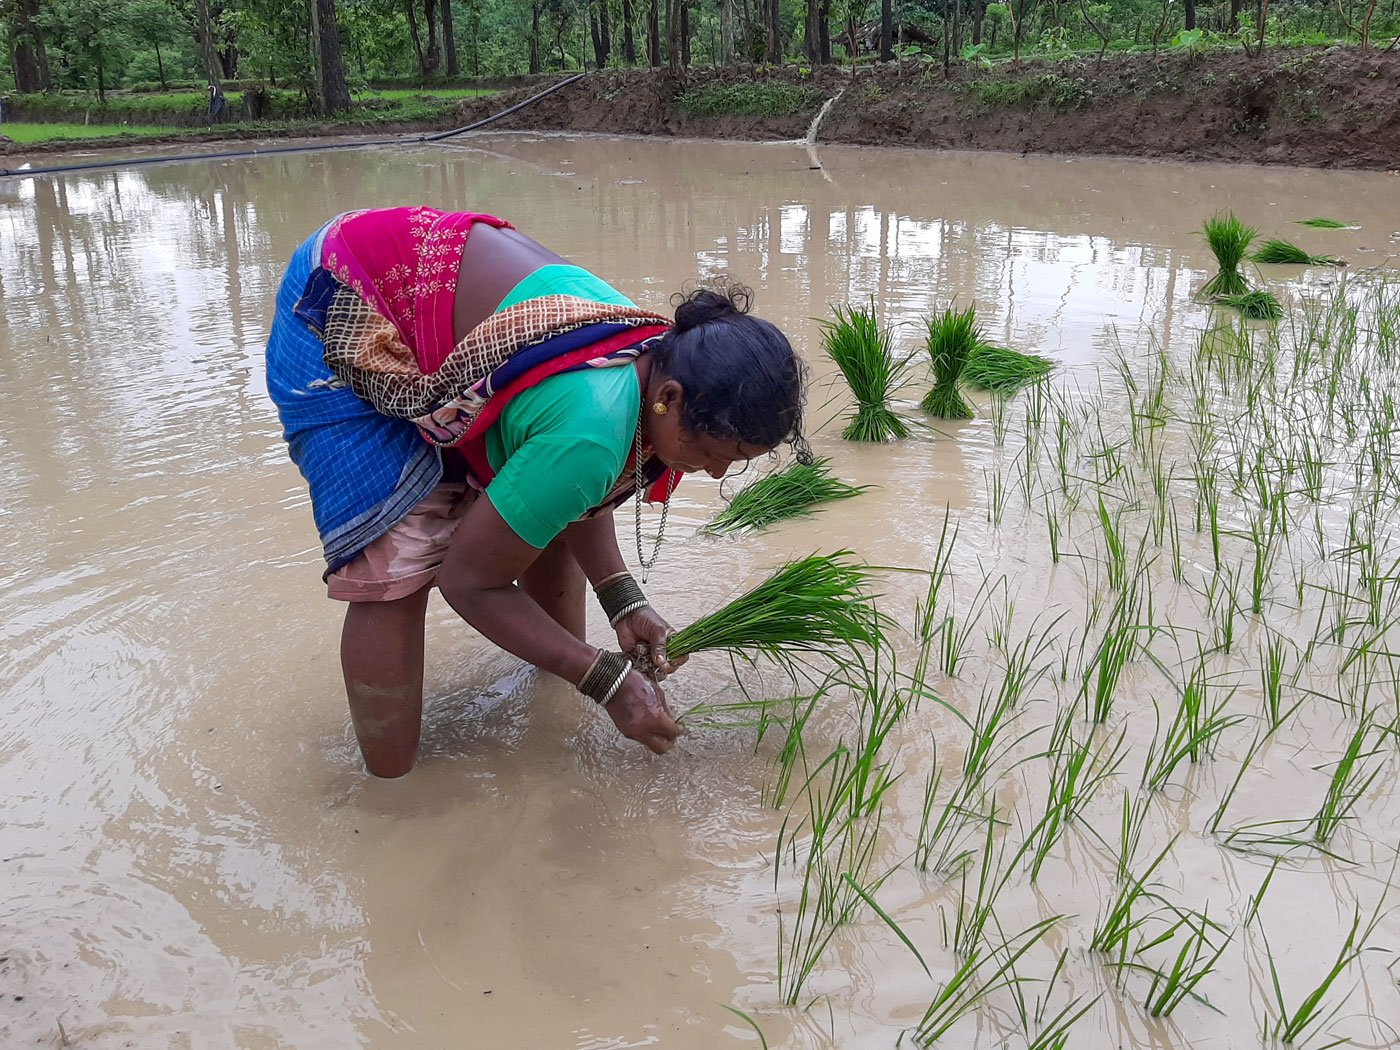 'We earn 4,000 rupees per acre, and together manage to plant saplings on two acres every day'